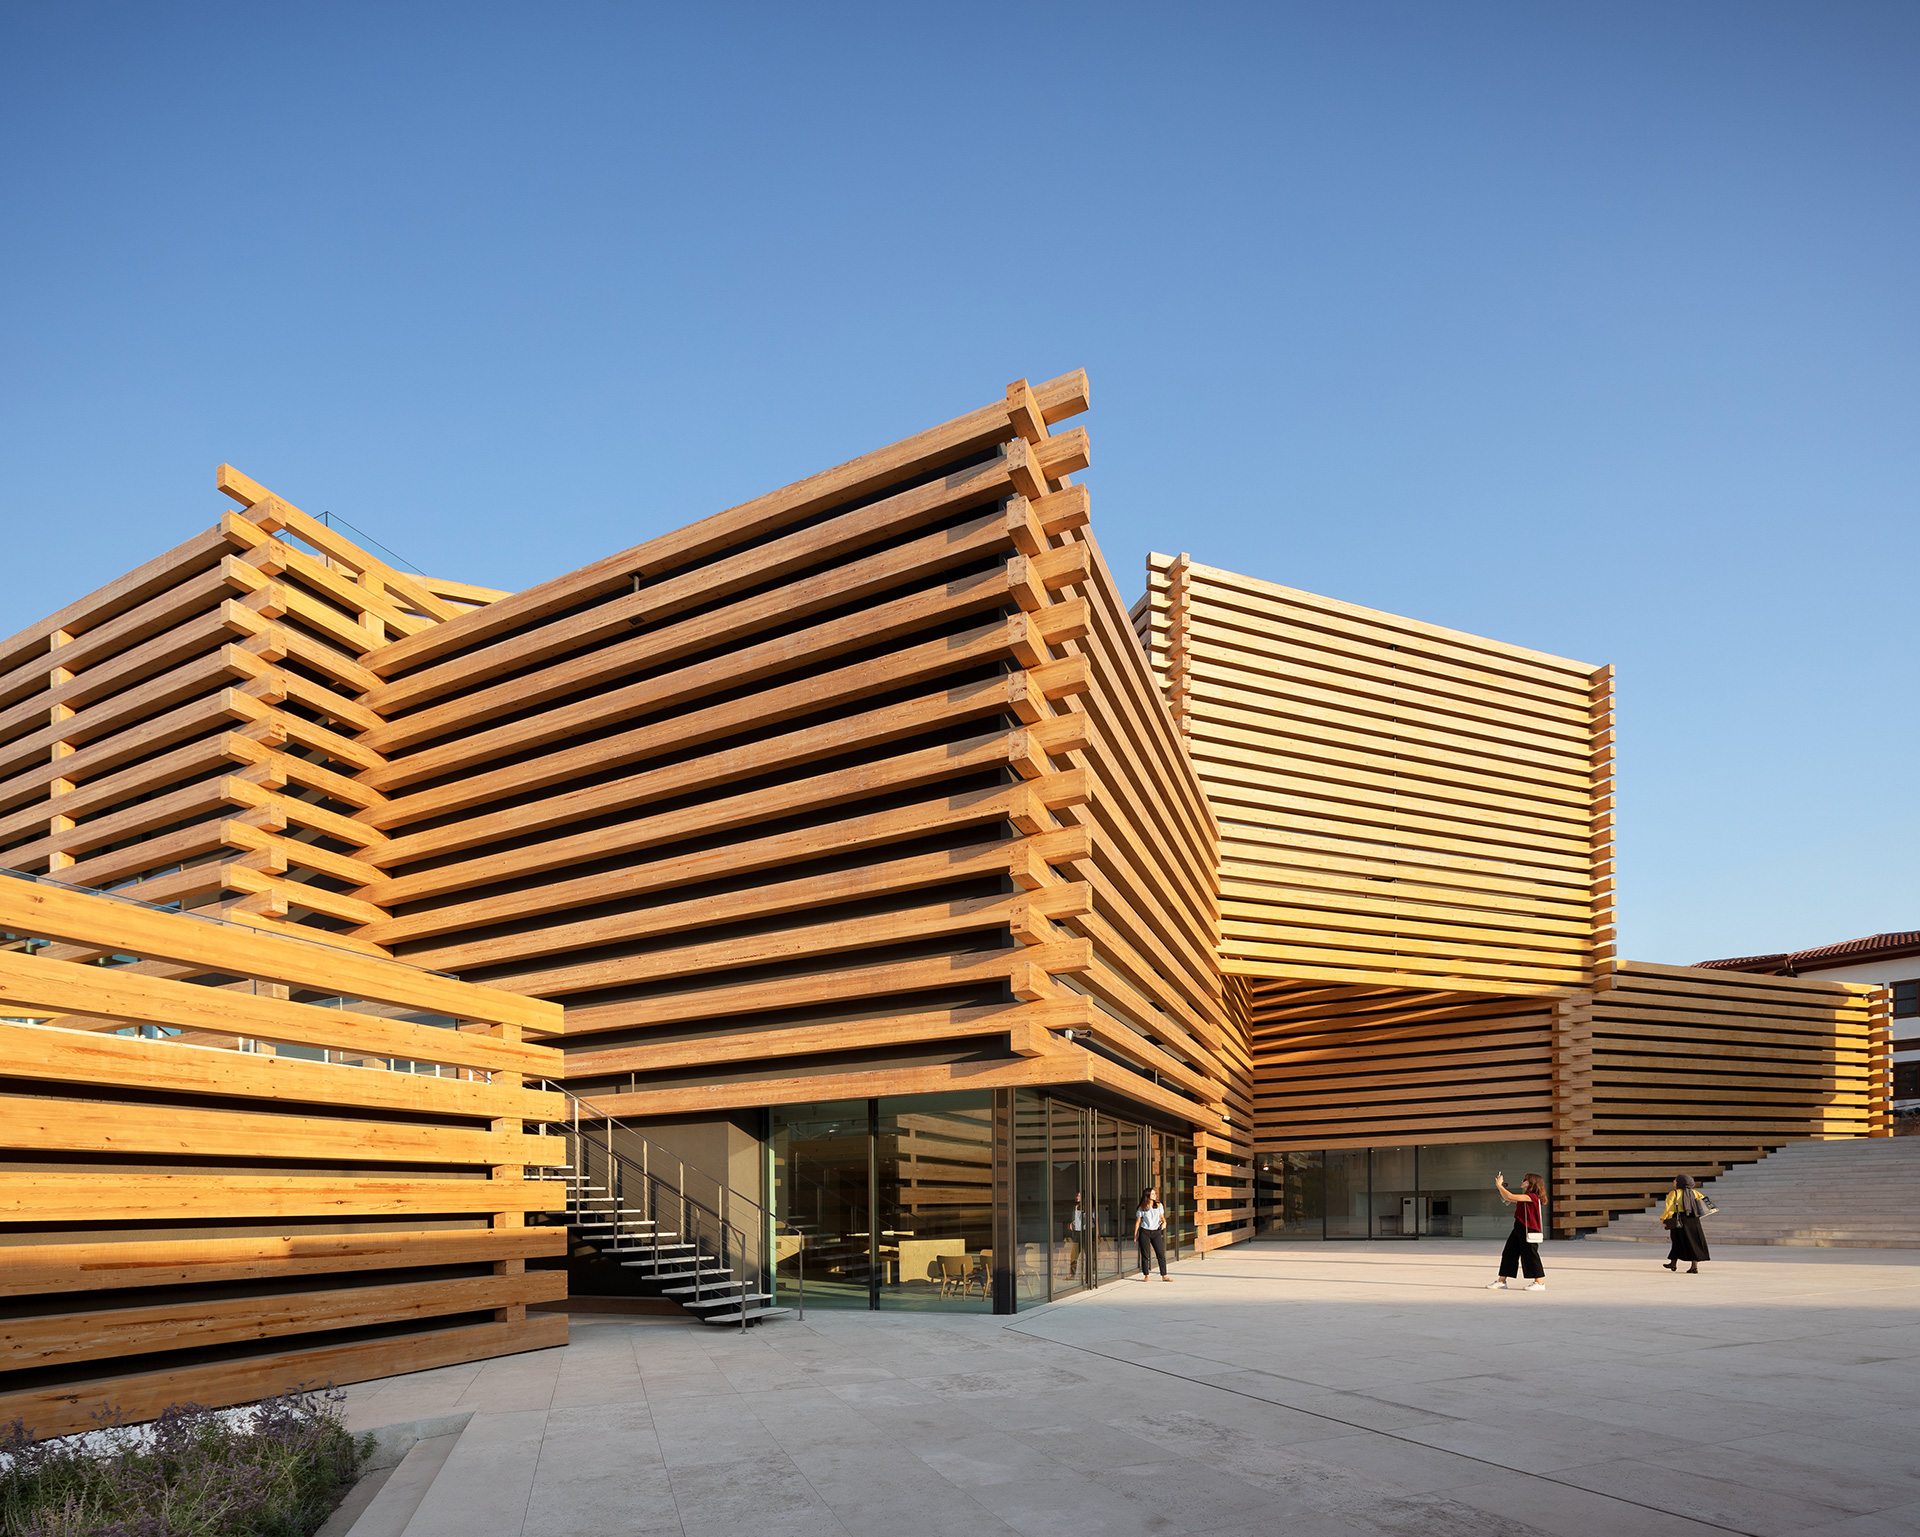 OMM by Kengo Kuma and Associates | Odunpazari Modern Museum| Kengo Kuma and Associates | STIR